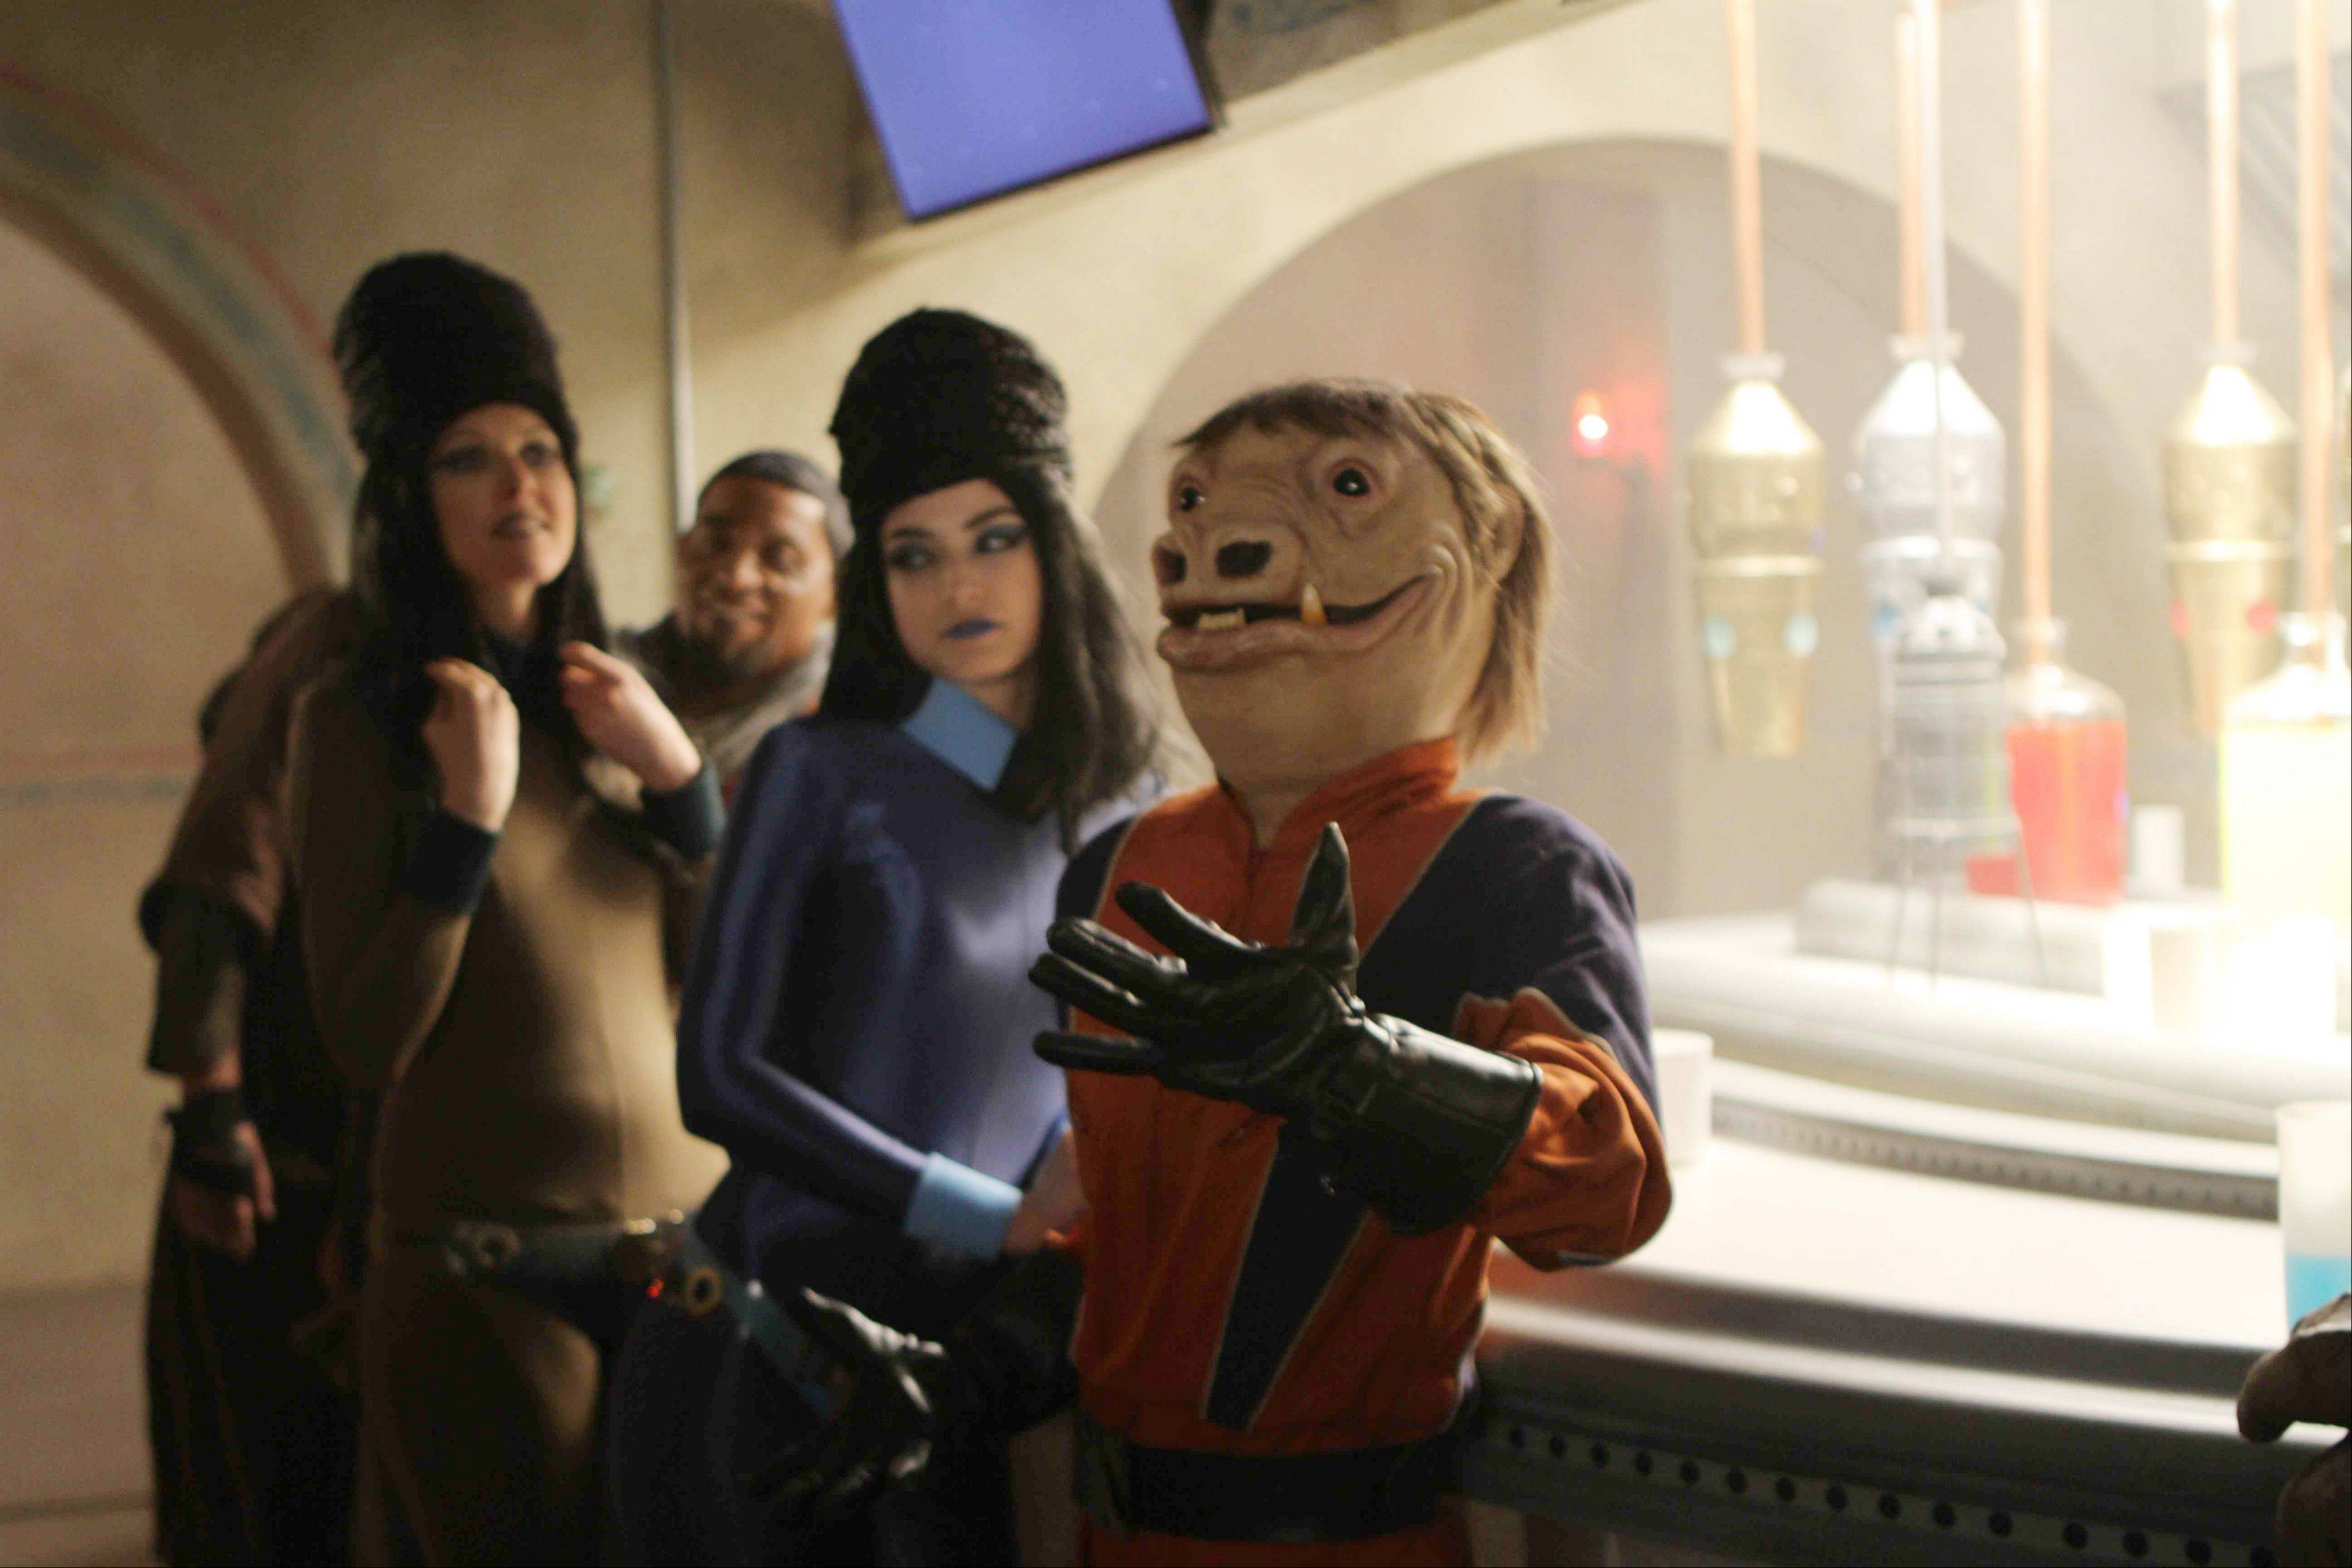 "This advertisement provided by Volkswagen of America Inc. shows a creature and friends at the bar of the Cantina; it will air Sunday during Super Bowl XLVI. Volkswagen charmed millions of viewers last year with a ""Star Wars""-themed ad introducing its redesigned 2012 Passat sedan."